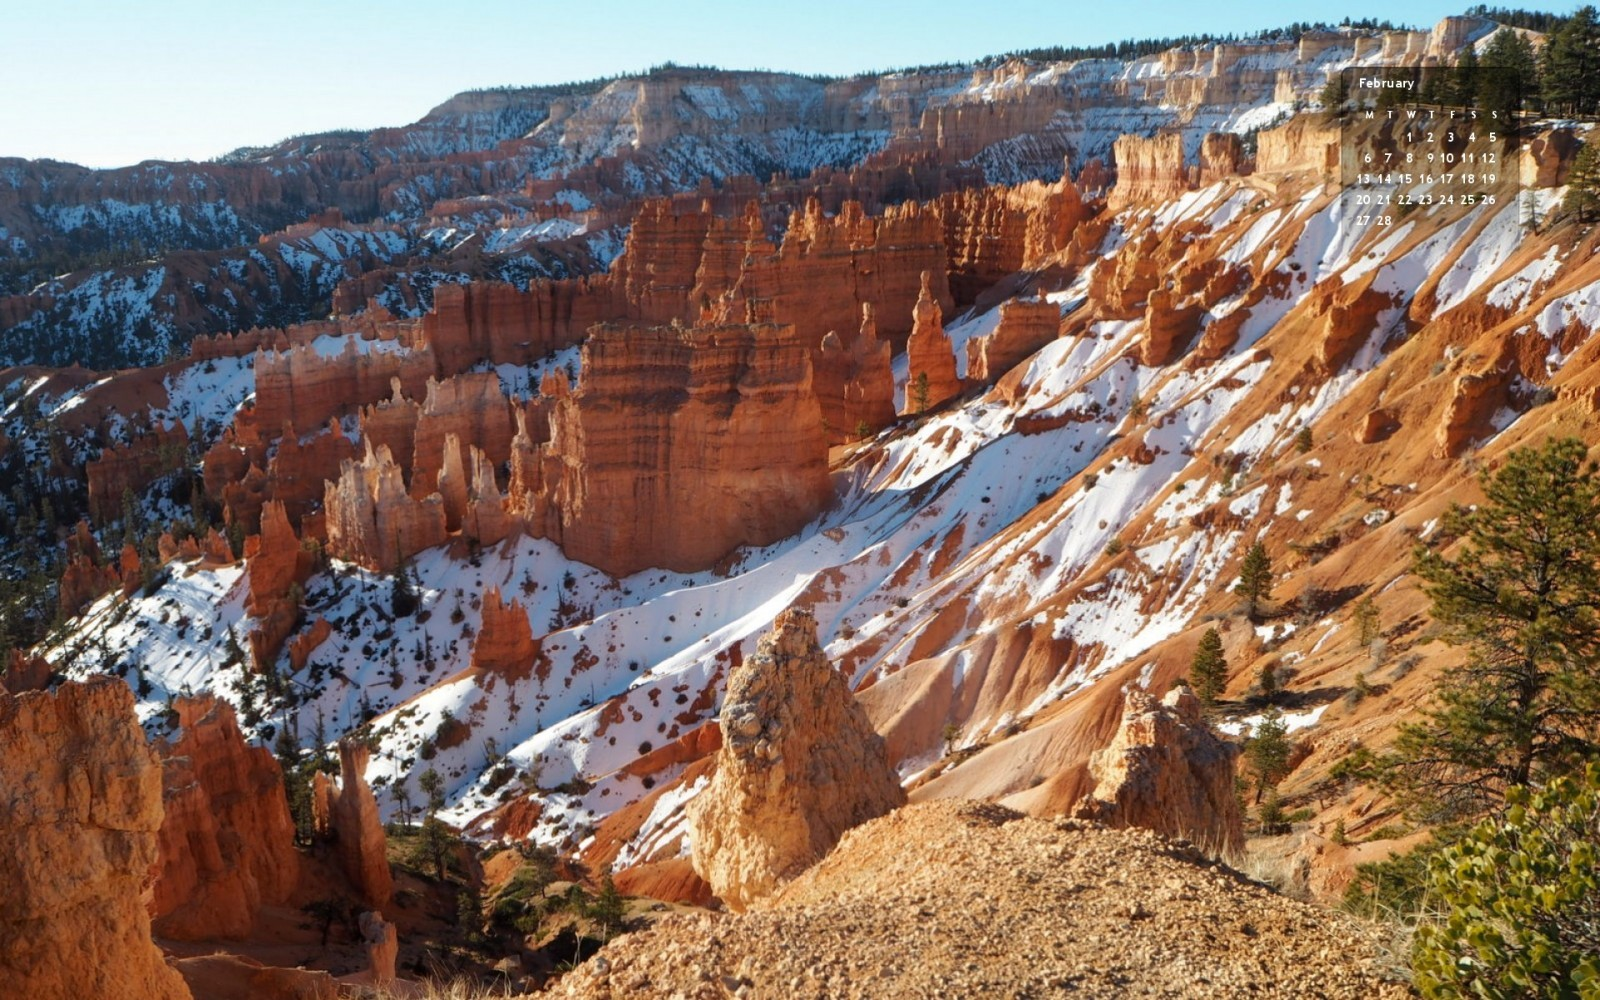 Wallpaper Bryce Canyon Feb 2015